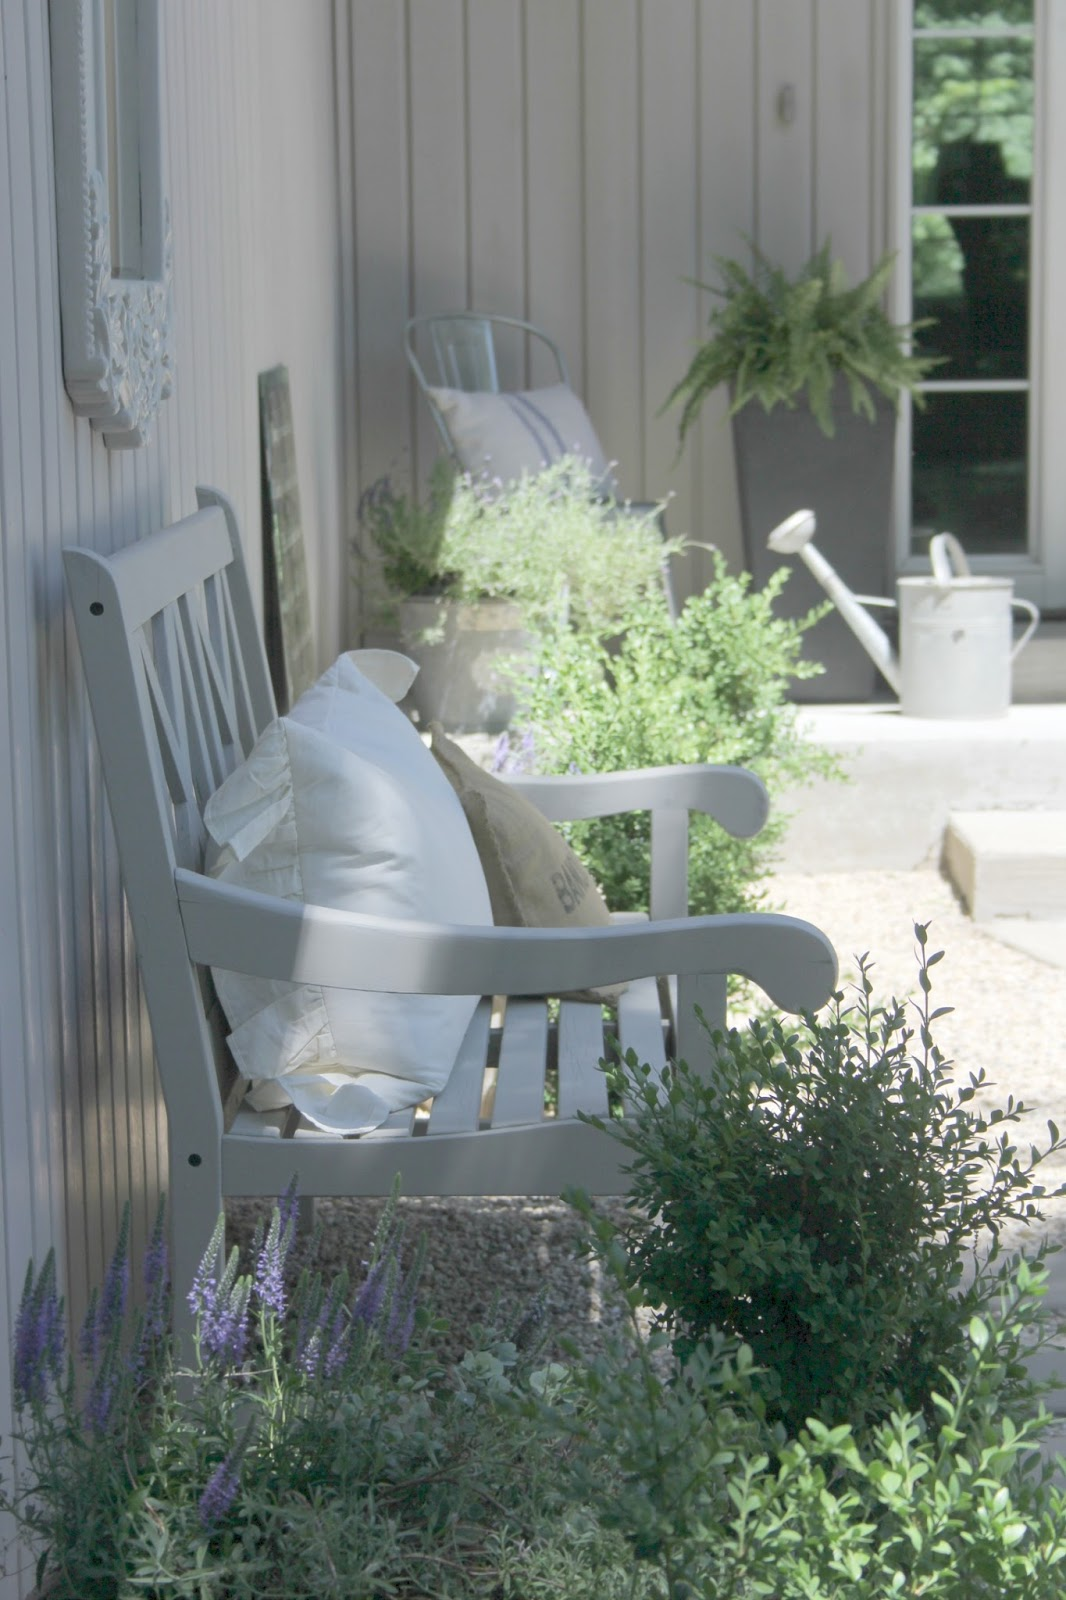 French farmhouse inspired courtyard with pea gravel, wood furniture, and vintage galvanized buckets. #hellolovelystudio #gardens #courtyards #frenchfarmhouse #peagravel #outdoorfurniture #outdoordecor